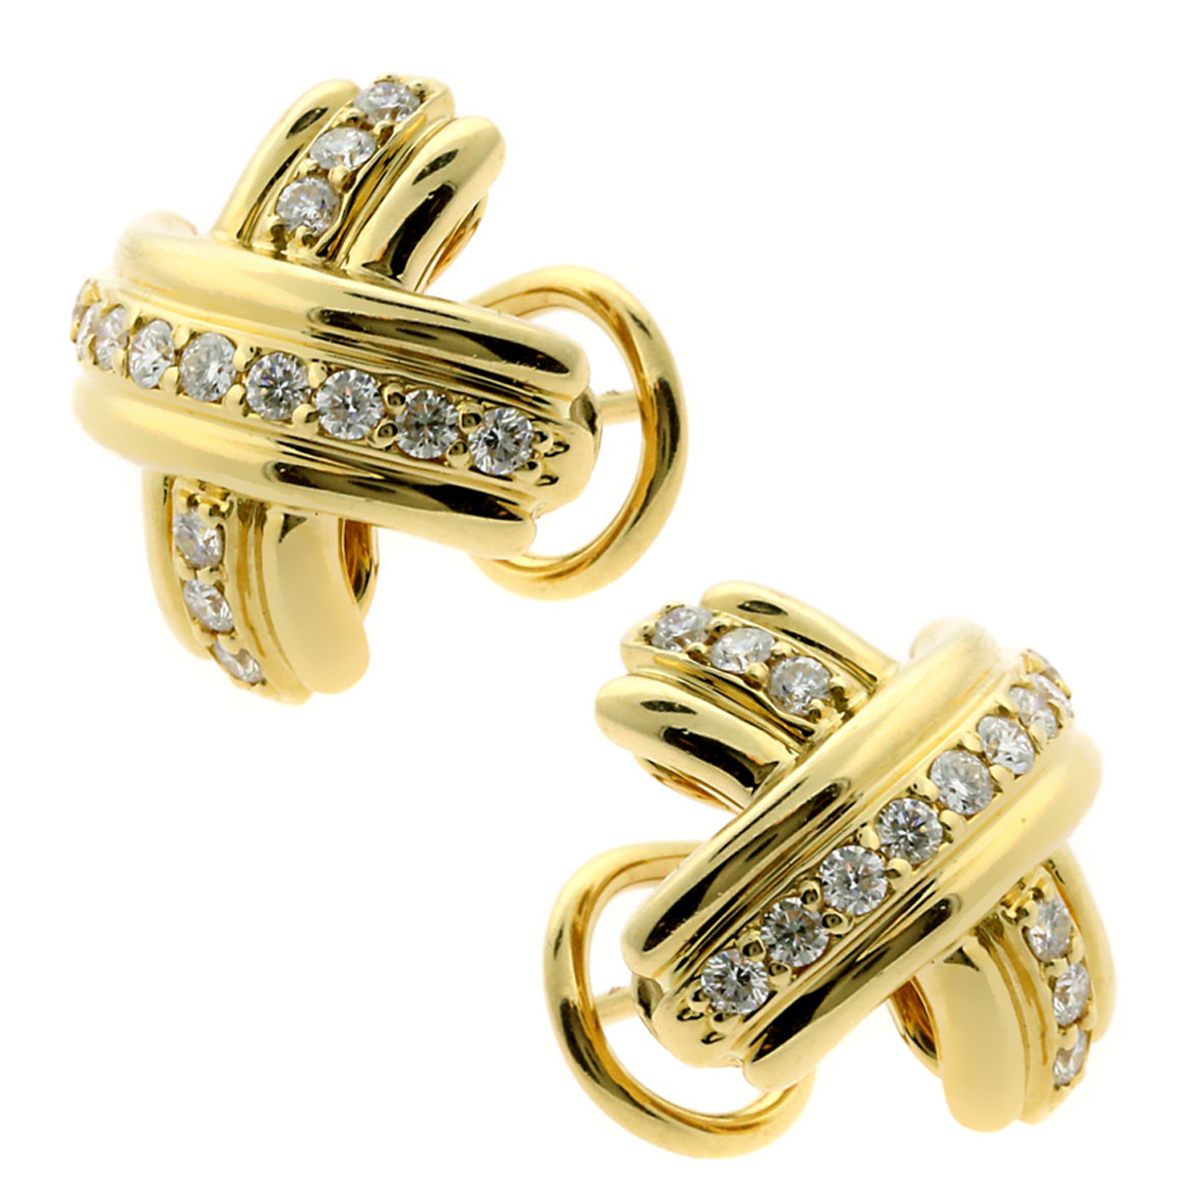 Tiffany & Co Crisscross Diamond Gold Earrings - Tiffany and Co Jewelry